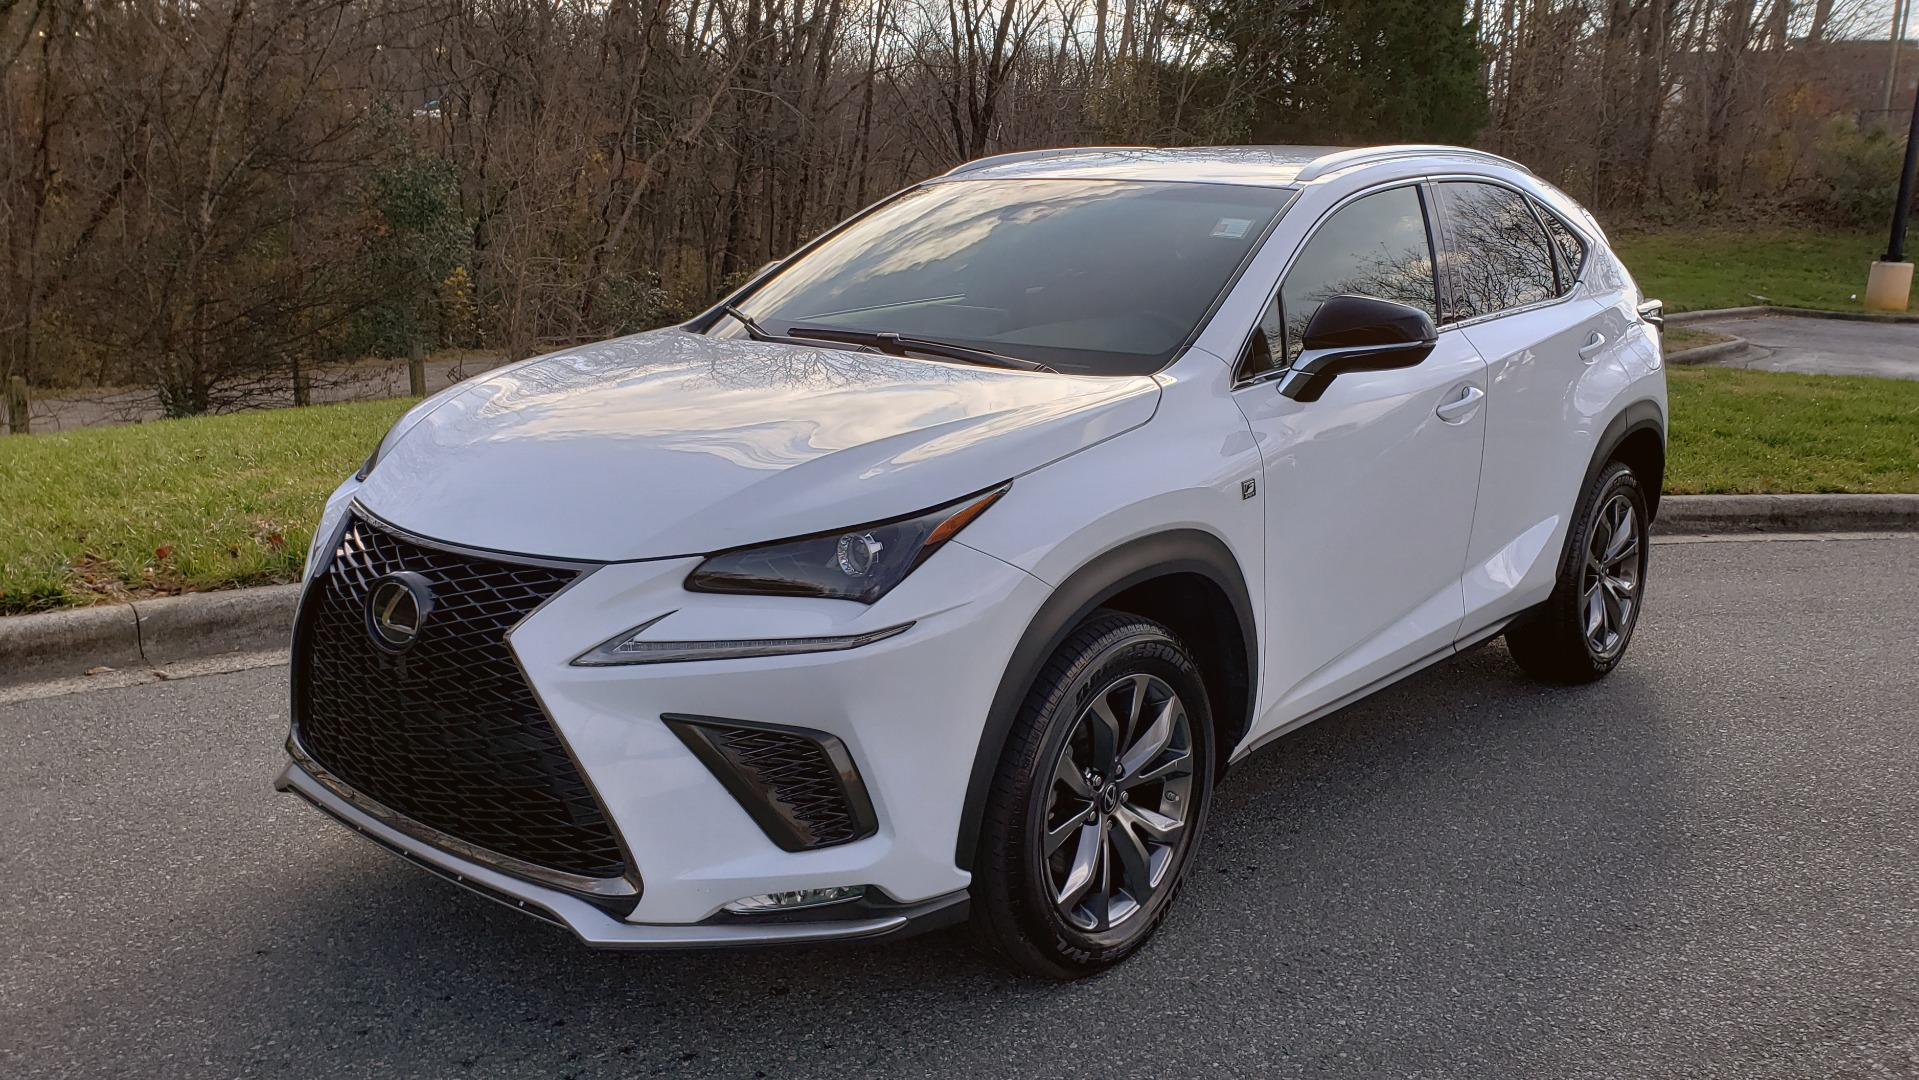 Used 2019 Lexus NX 300 F-SPORT / 2.0L TURBO / LEATHER / 18IN WHEELS / REARVIEW for sale $31,195 at Formula Imports in Charlotte NC 28227 1